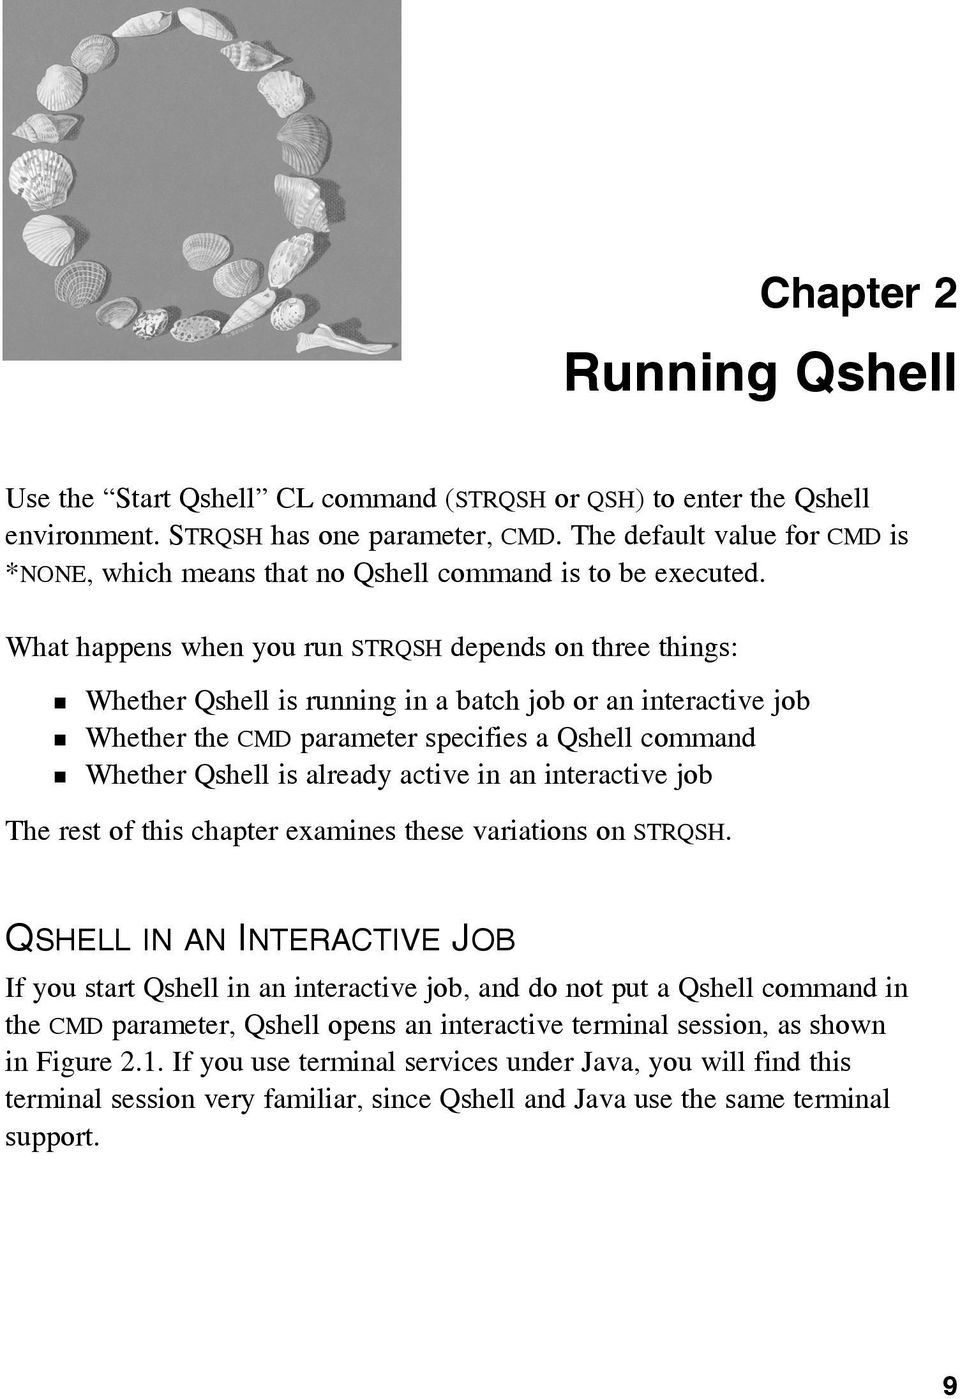 Running Qshell  Chapter 2 QSHELL IN AN INTERACTIVE JOB - PDF